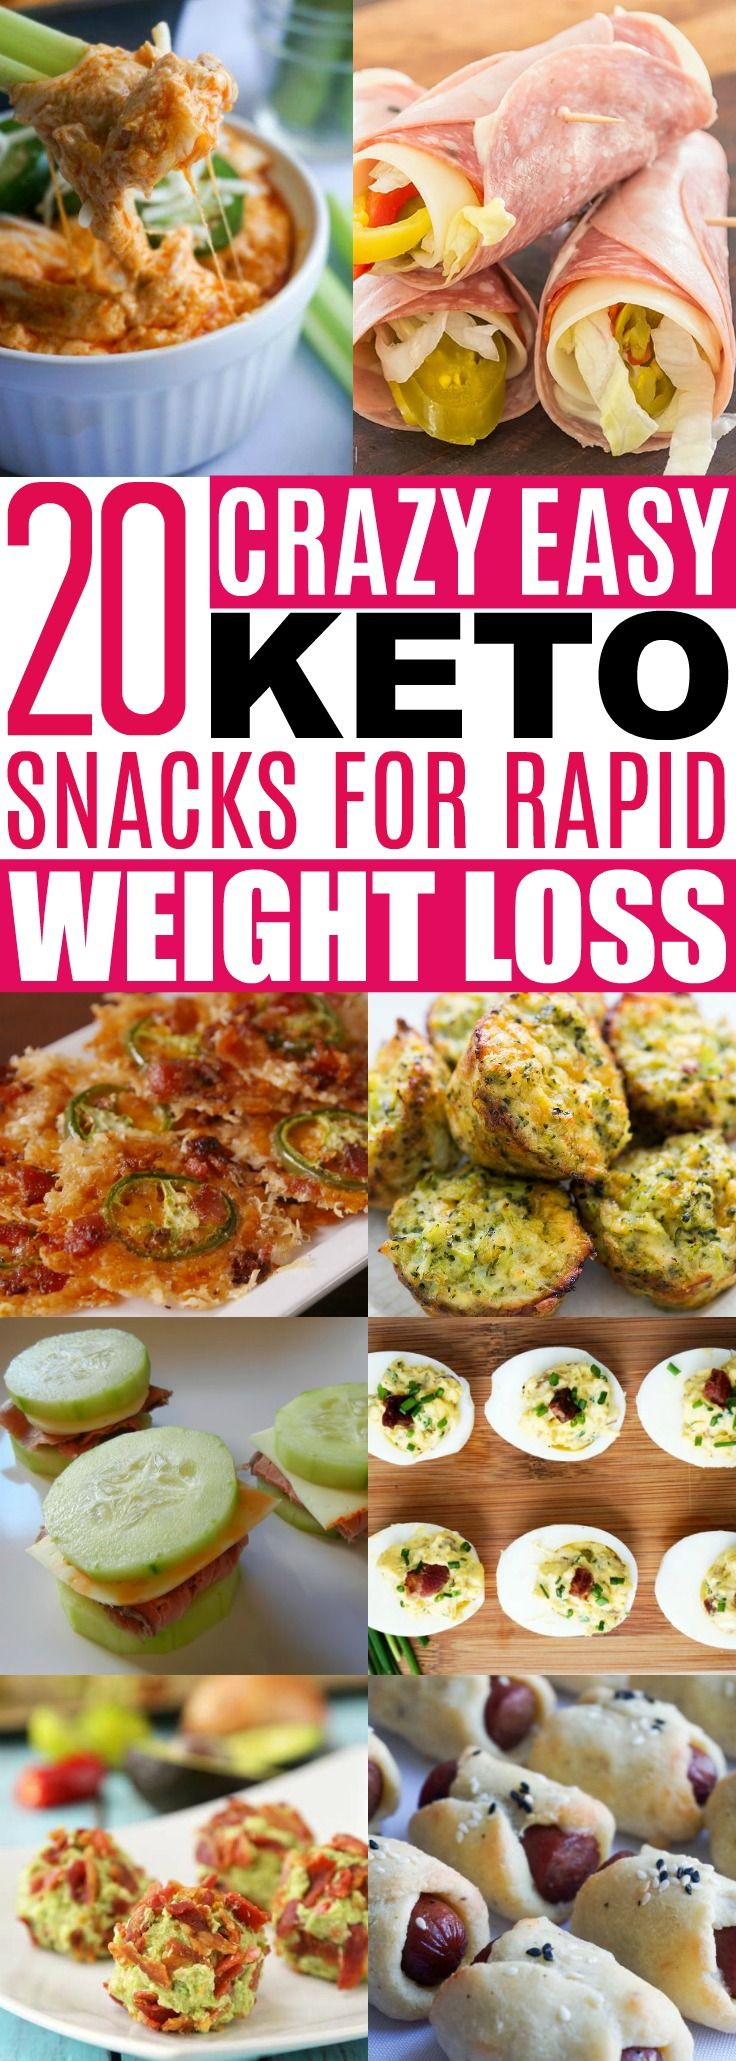 how to lose weight quickly using keto or vegan